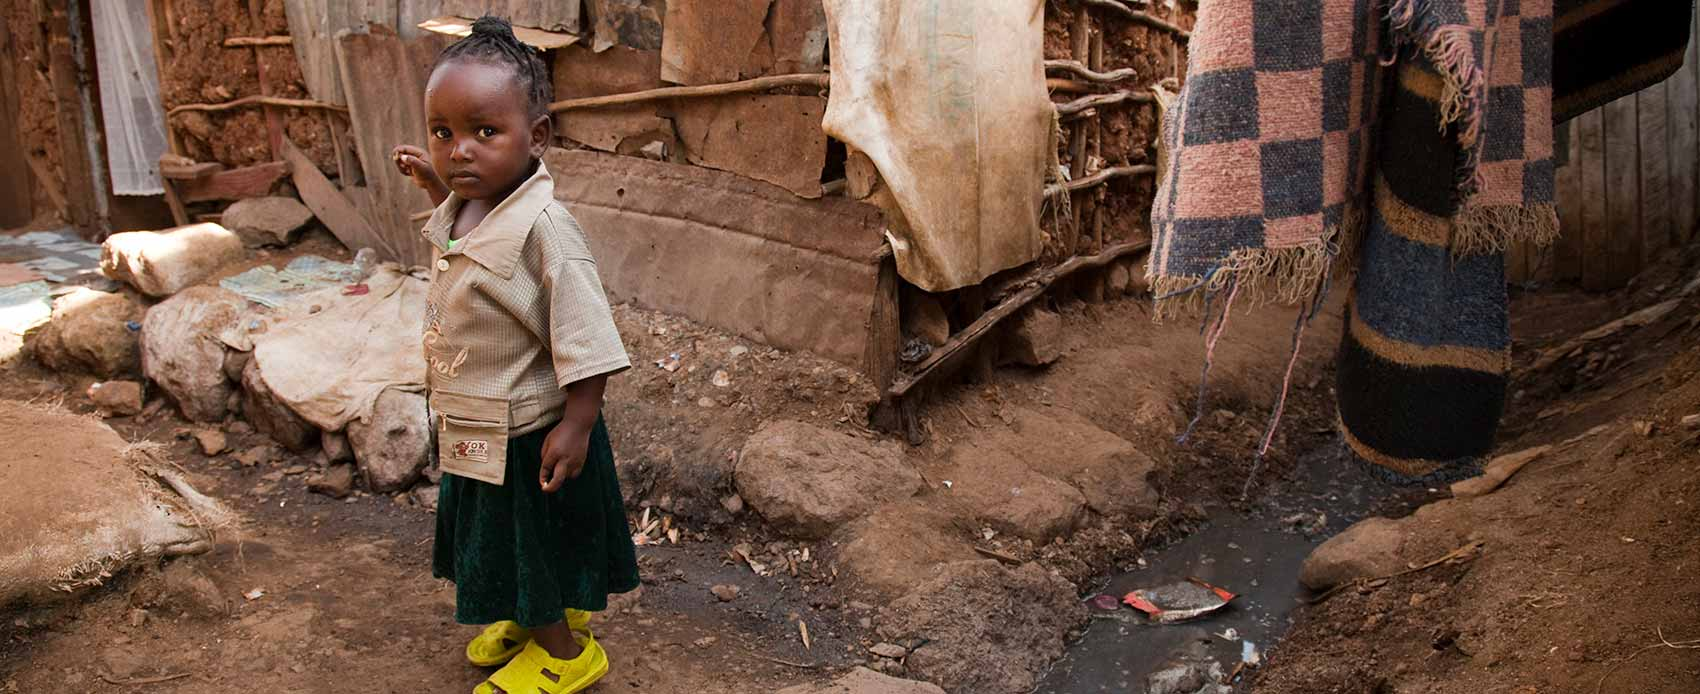 a compelling case of the poverty in the world today Peter singer believes global poverty can be eradicated, and we are  in the  life you can save, singer has produced a compelling case for.